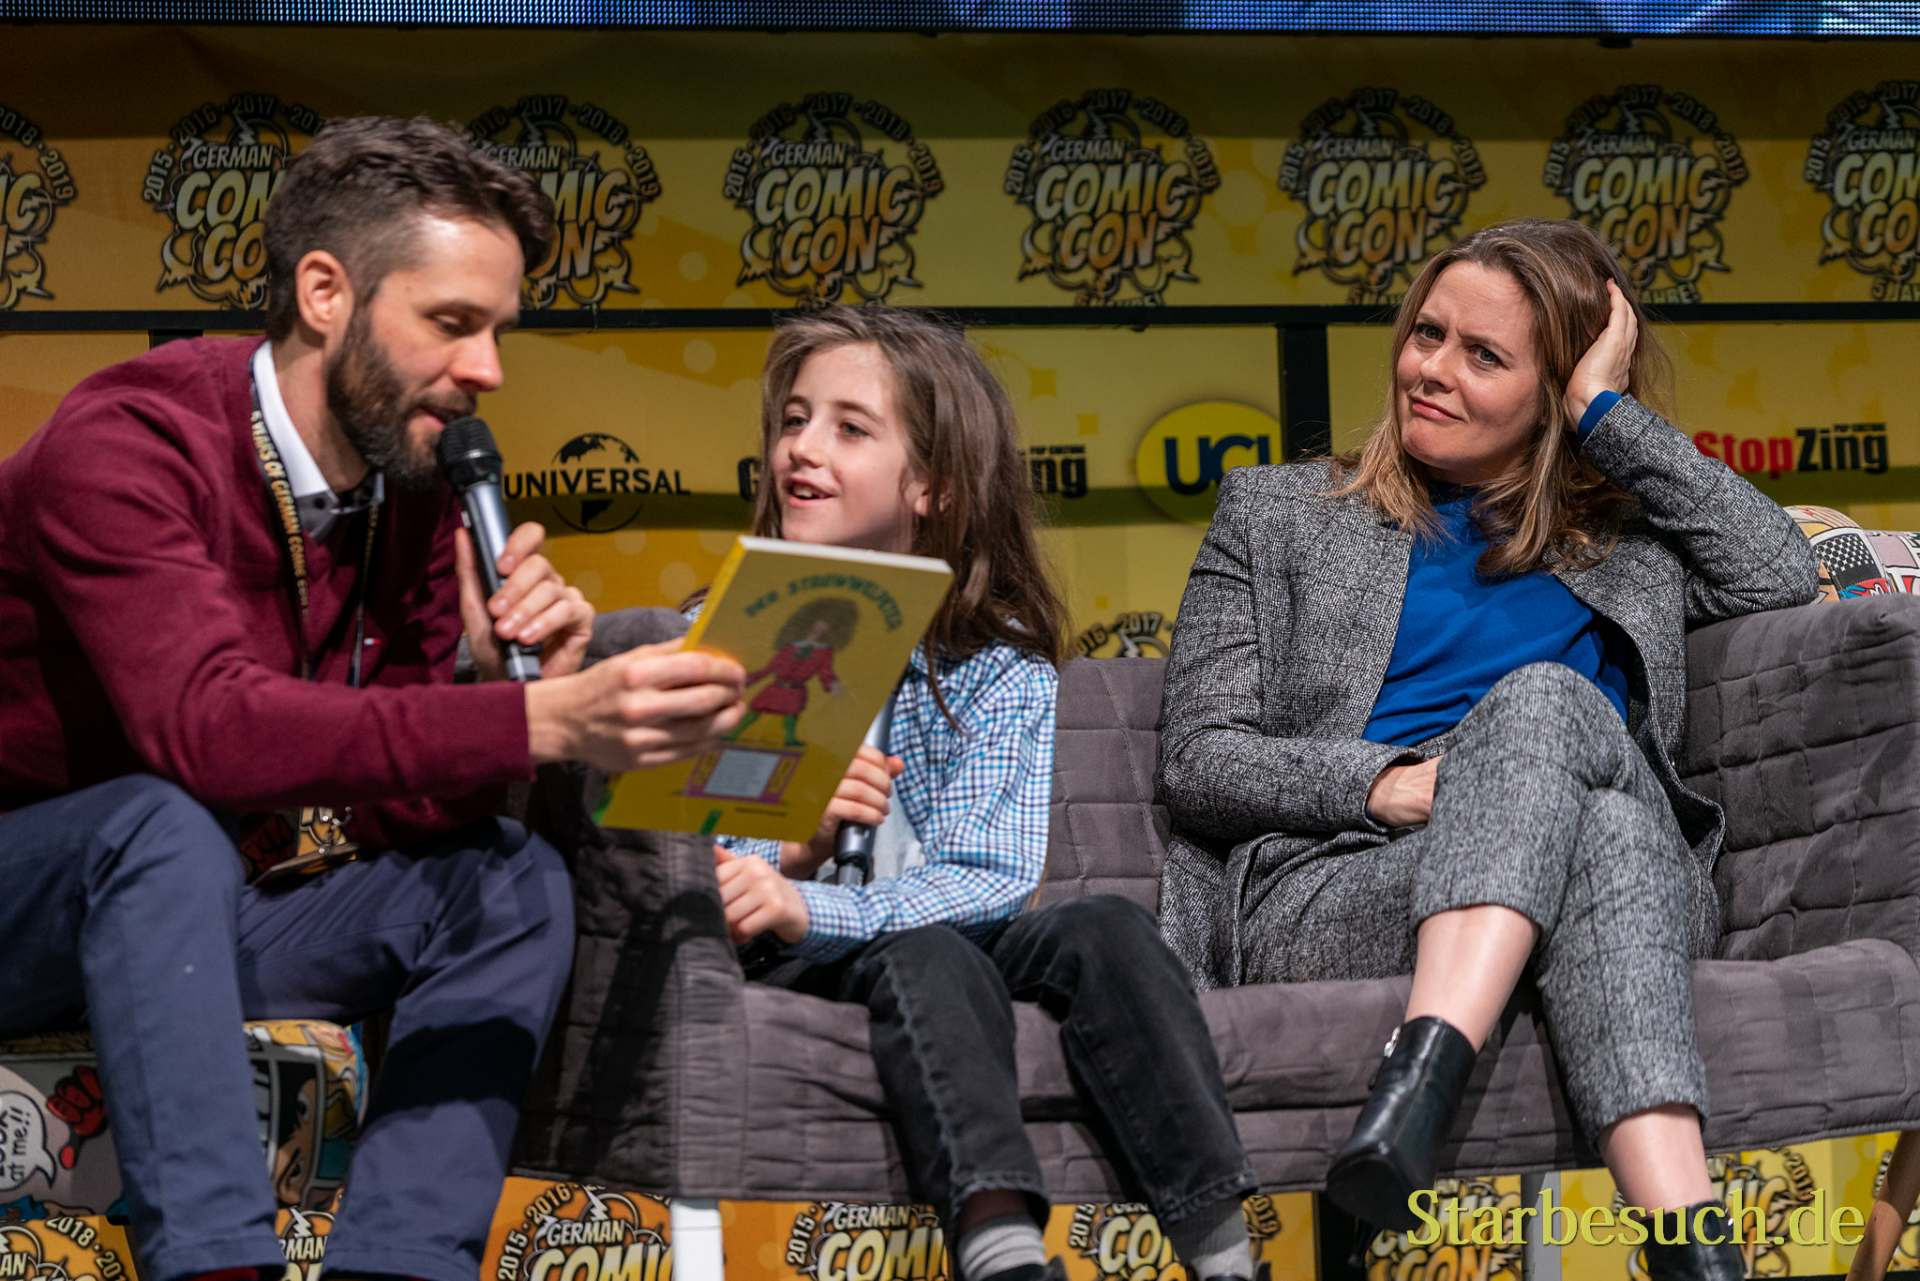 DORTMUND, GERMANY - December 7th 2019: Alicia Silverstone with her son Bear Blu Jarecki at German Comic Con Dortmund